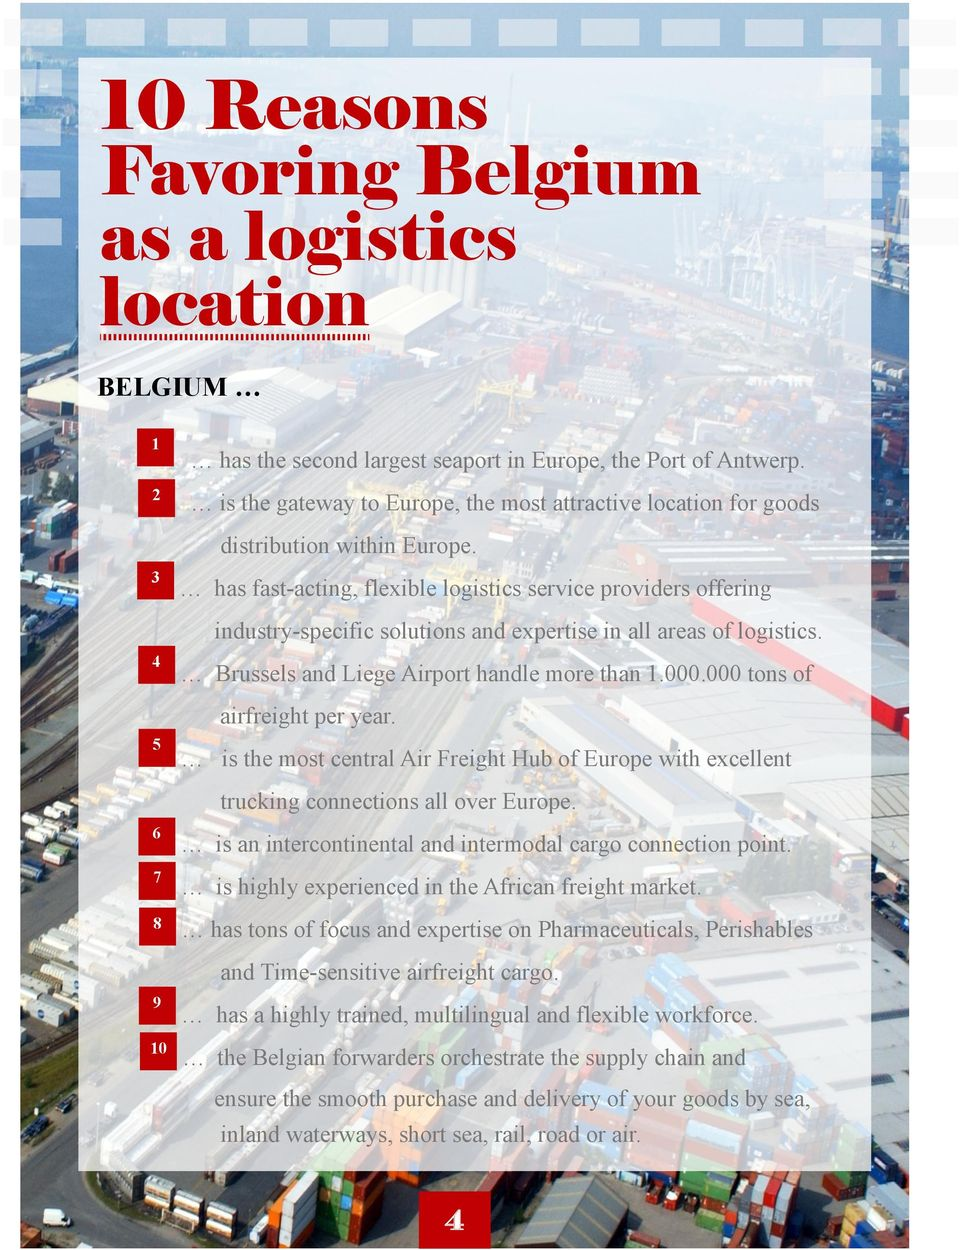 has fast-acting, flexible logistics service providers offering industry-specific solutions and expertise in all areas of logistics. Brussels and Liege Airport handle more than 1.000.